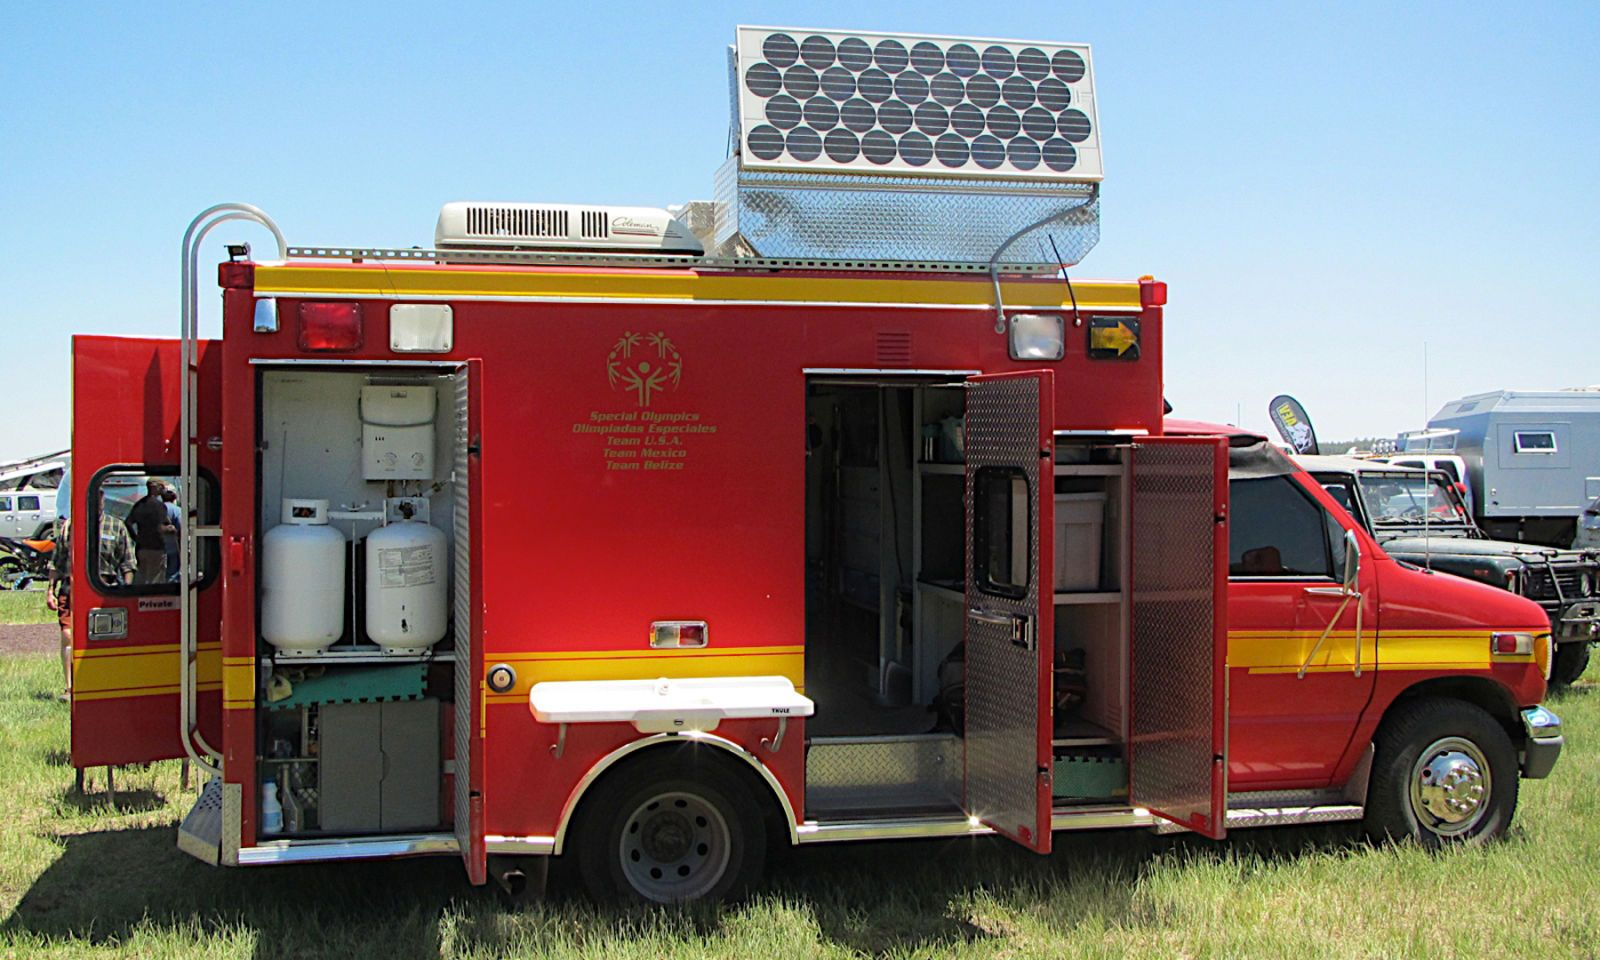 14 Extreme Campers Built For Off Roading Expedition Vehicle Ambulance Camper